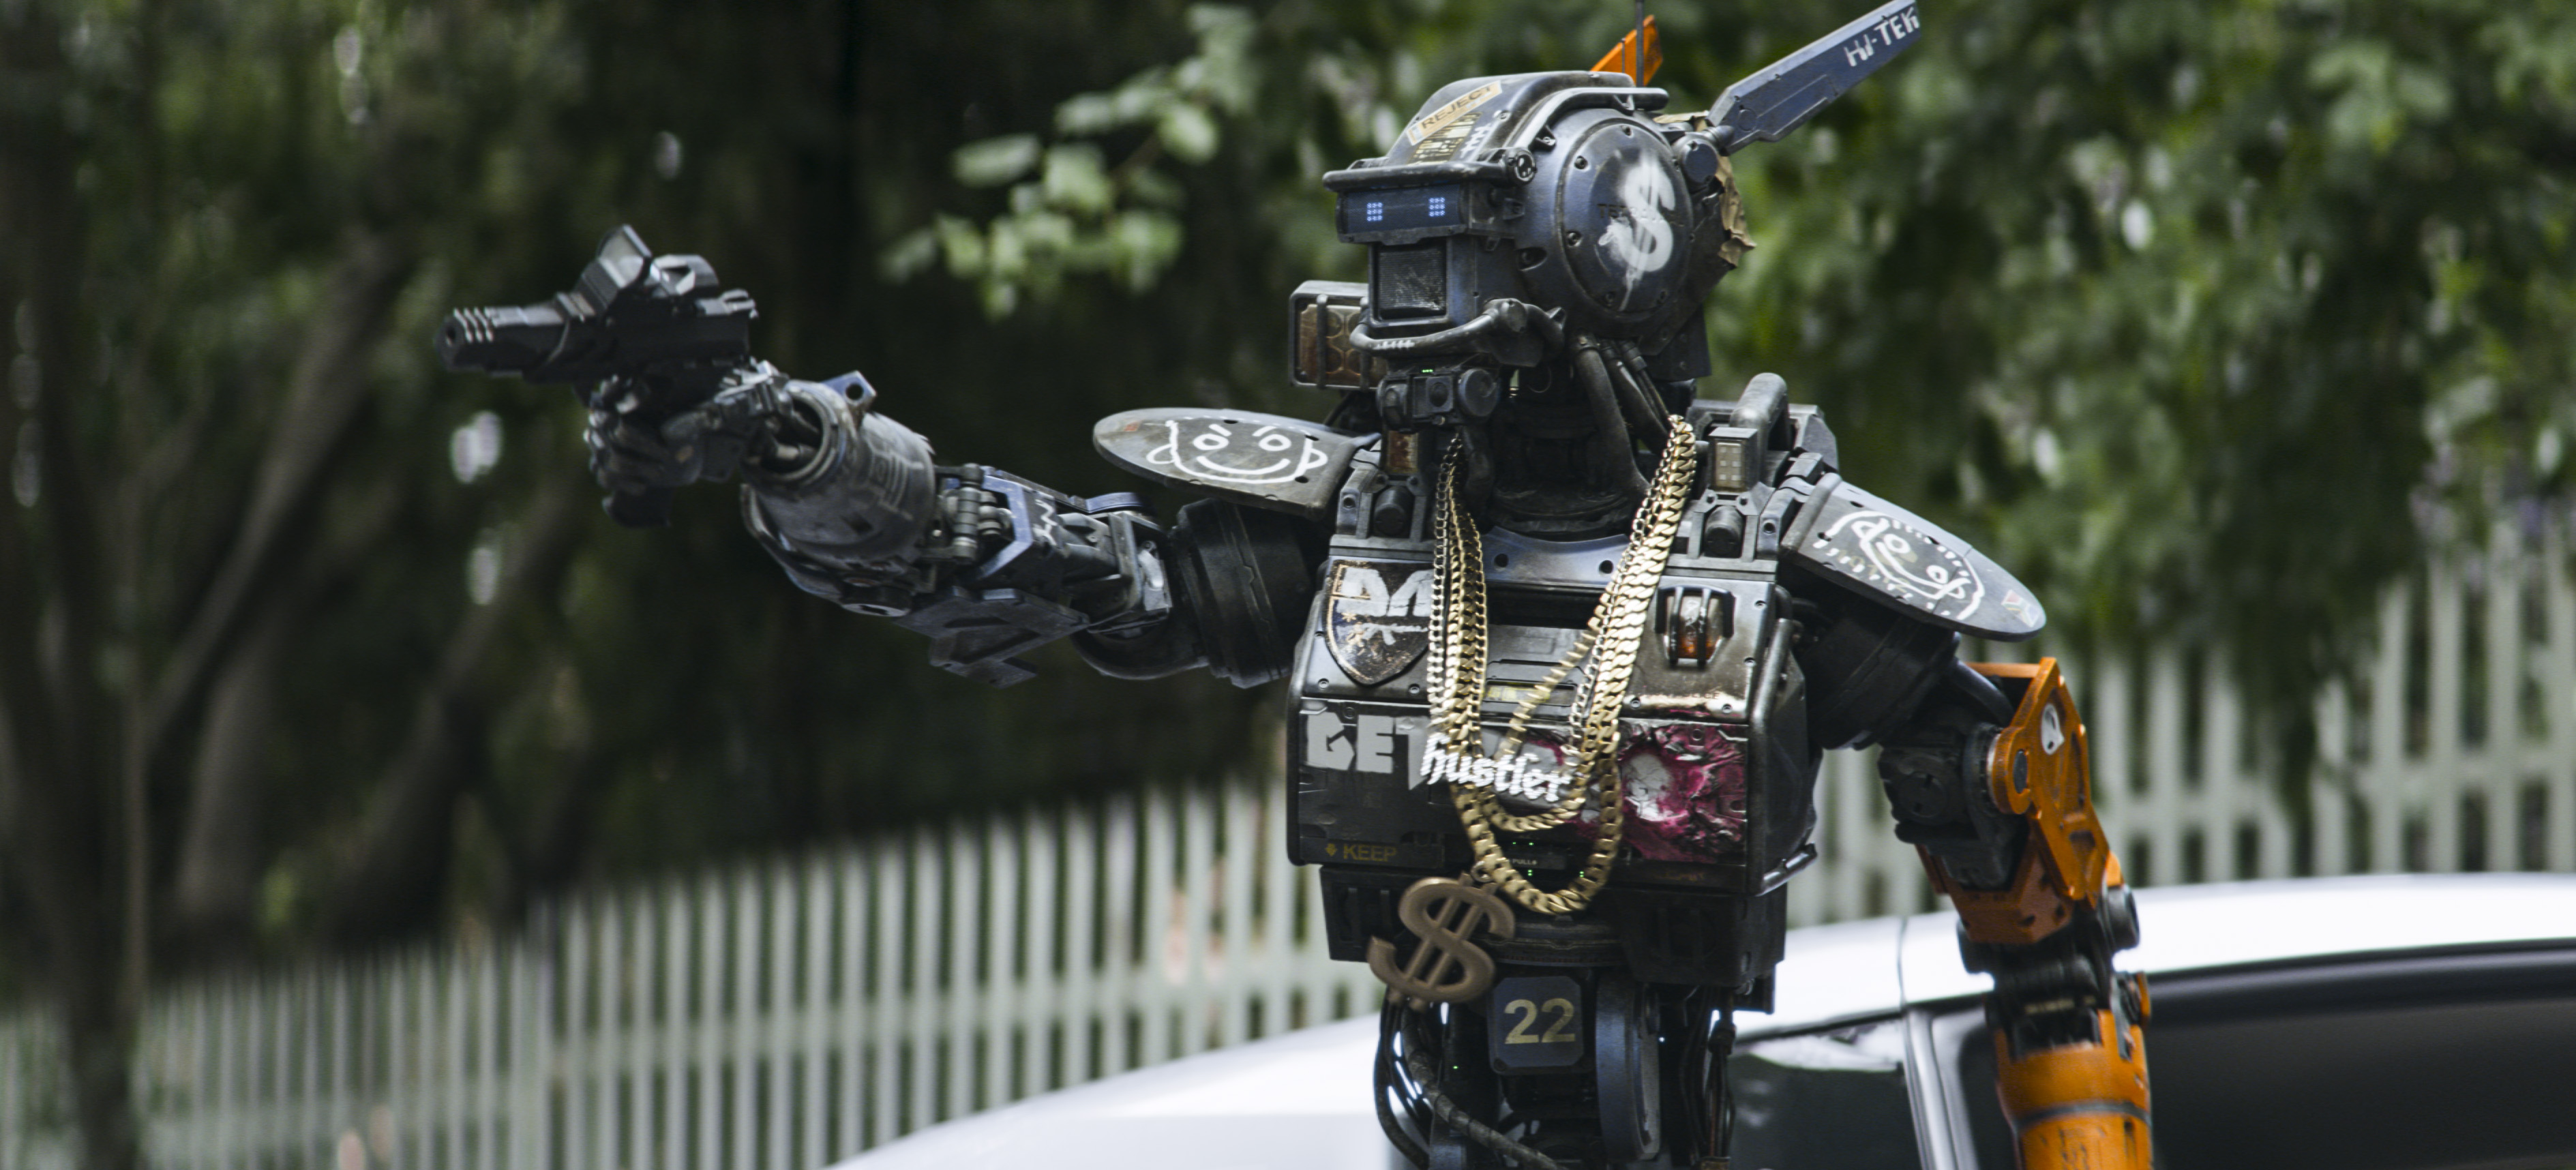 ***SUNDAY CALENDAR STORY FOR JANUARY 11, 2014. DO NOT USE PRIOR TO PUBLICATION**********Chappie (Sharlto Copley) from Columbia Pictures' action-adventure movie CHAPPIE.